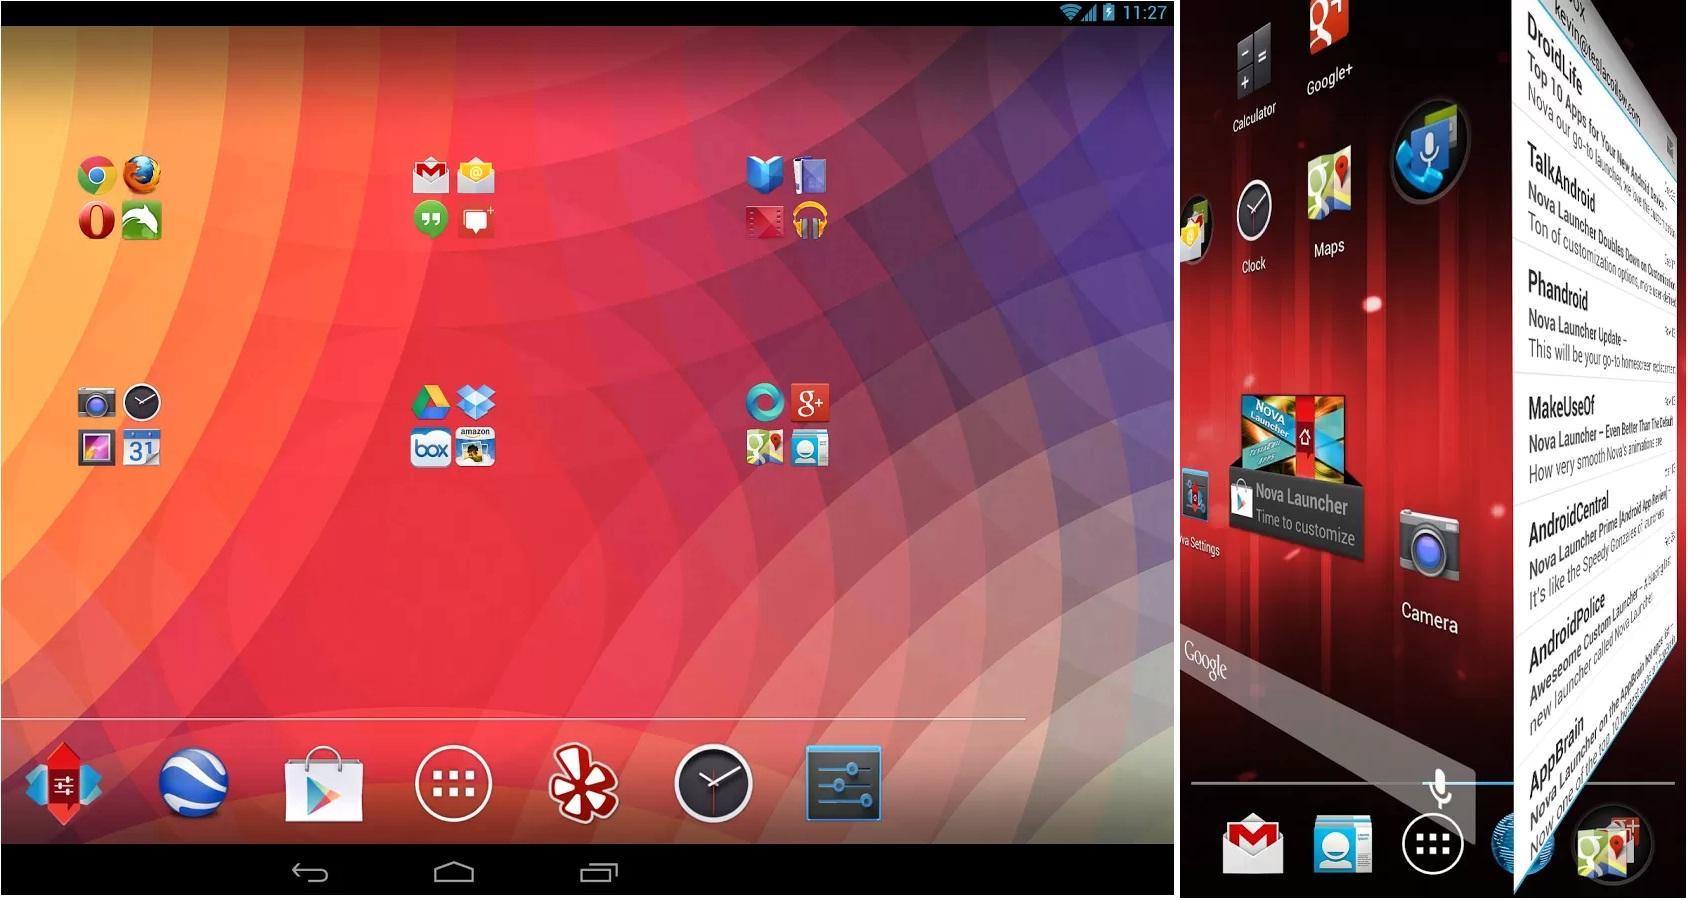 Launchers for Android, Android Launcher App, Nova Launcher, Nova Launcher for Android, techbuzzes